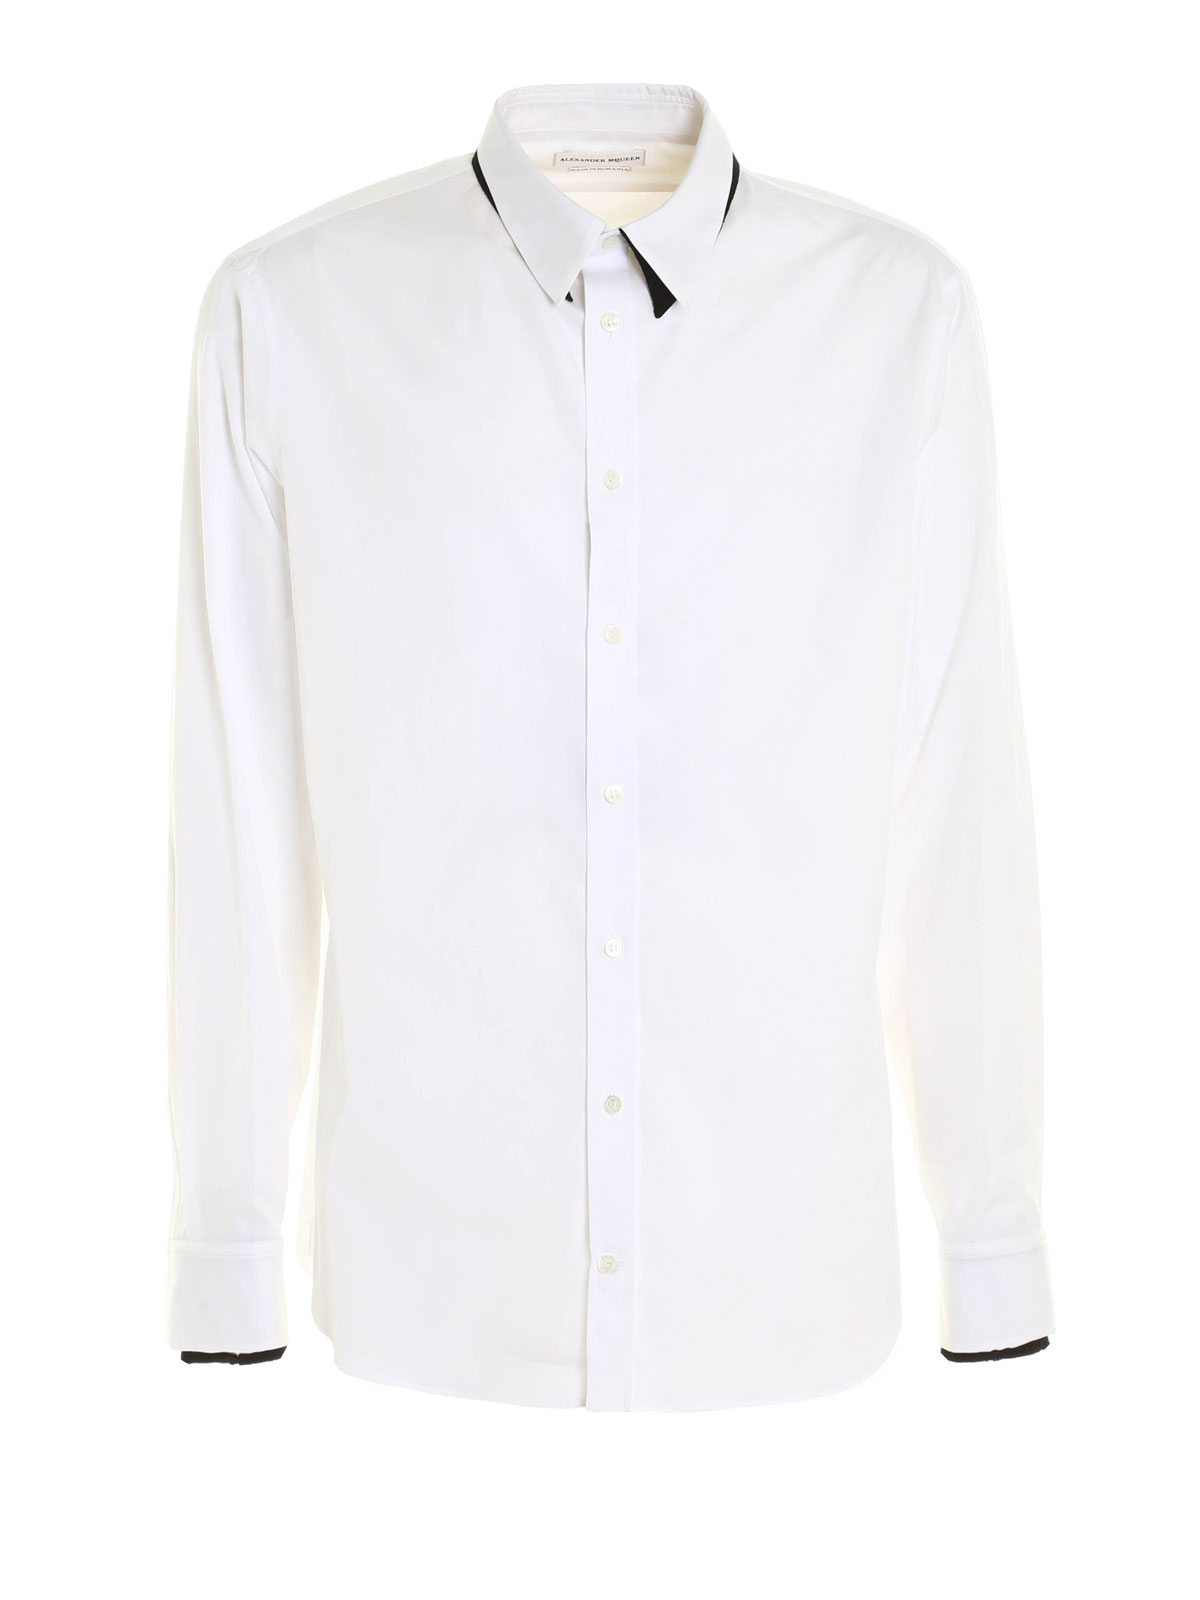 Double collar and cuff shirt by alexander mcqueen shirts for Pin collar shirt double cuff